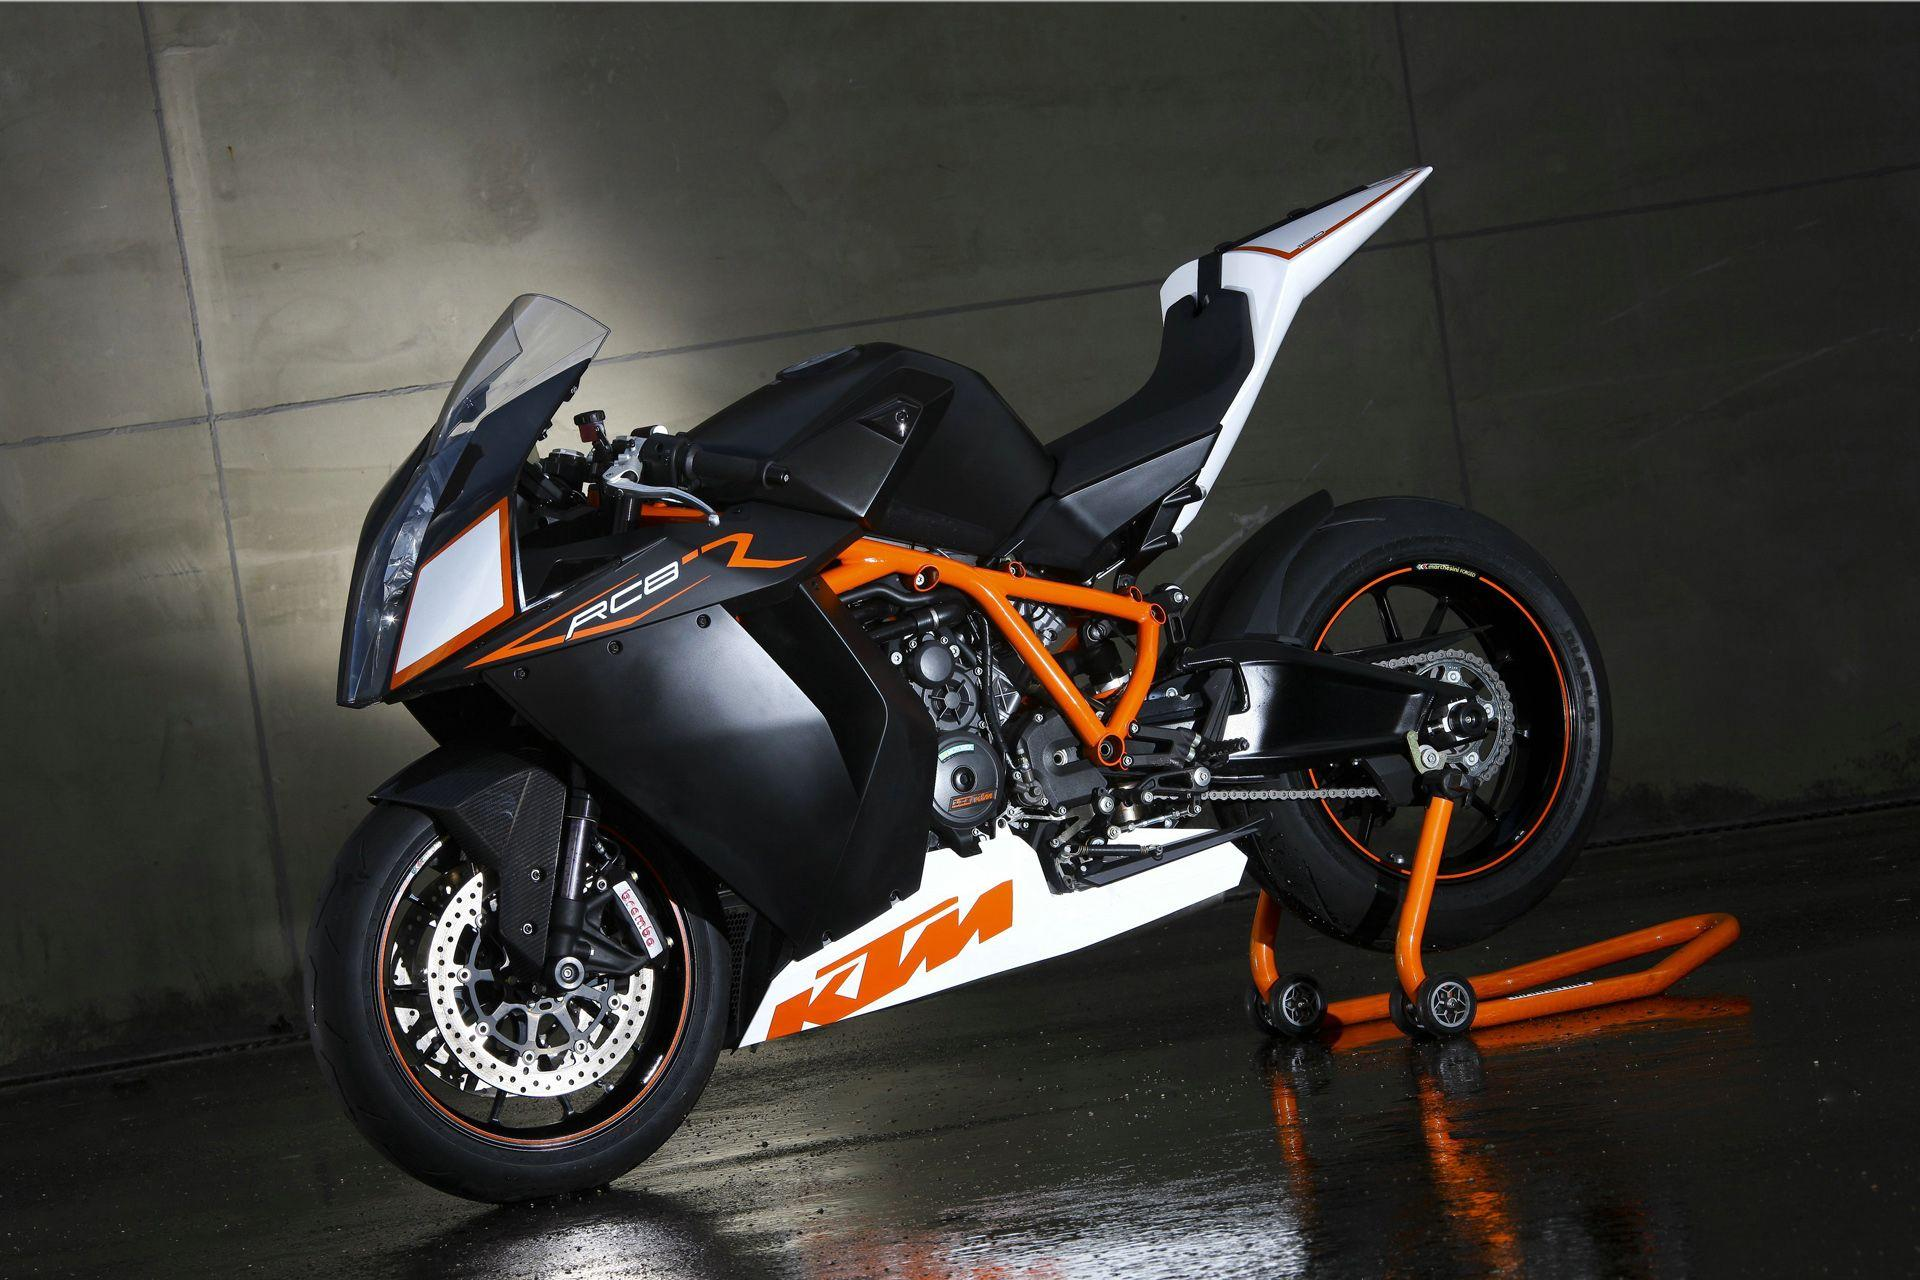 Ktm RC8 HD Wallpaper, Backgrounds Image